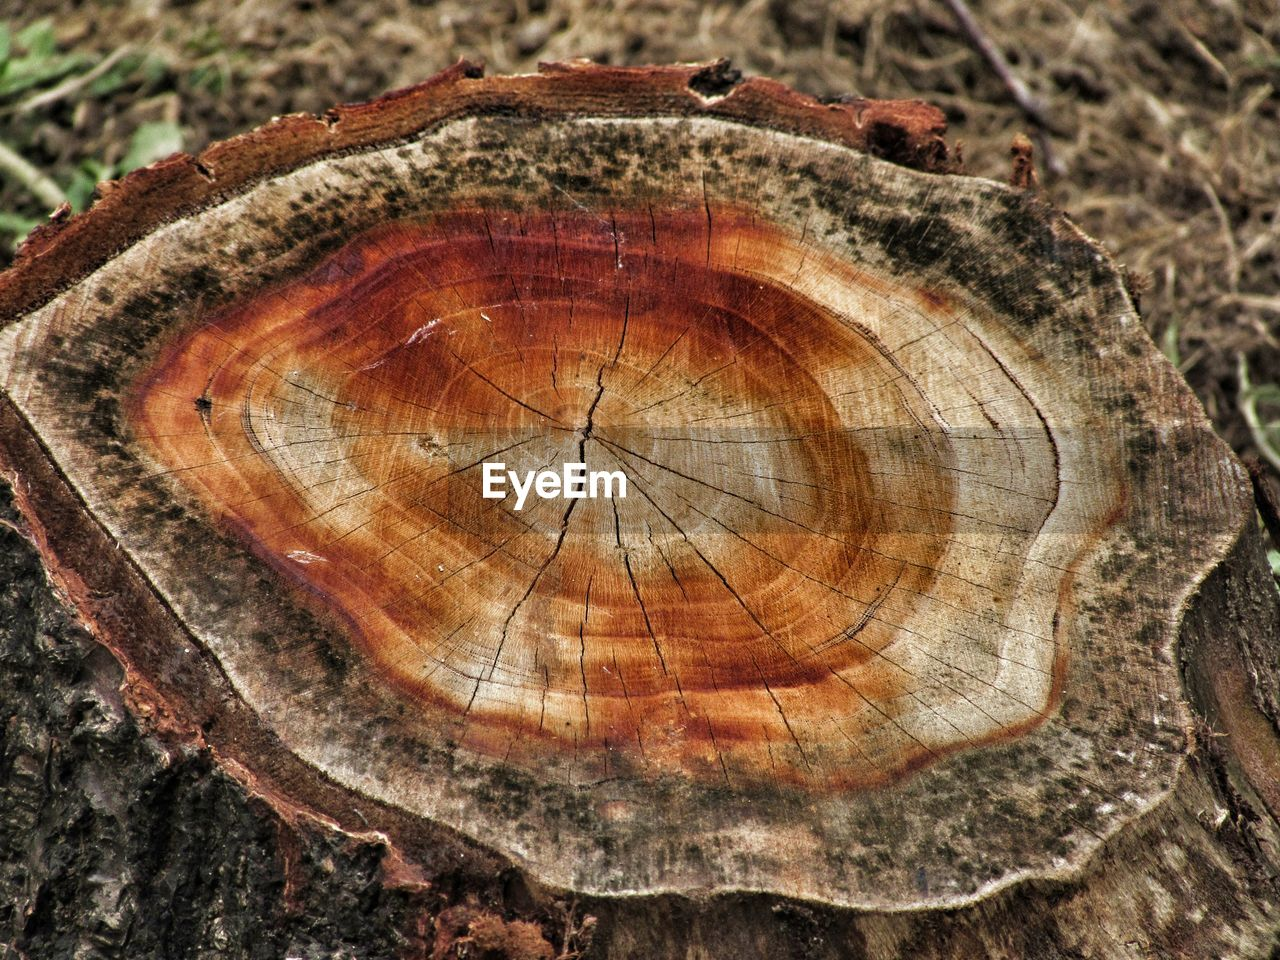 tree ring, close-up, tree, wood - material, tree stump, no people, timber, log, tree trunk, cross section, outdoors, deforestation, textured, day, nature